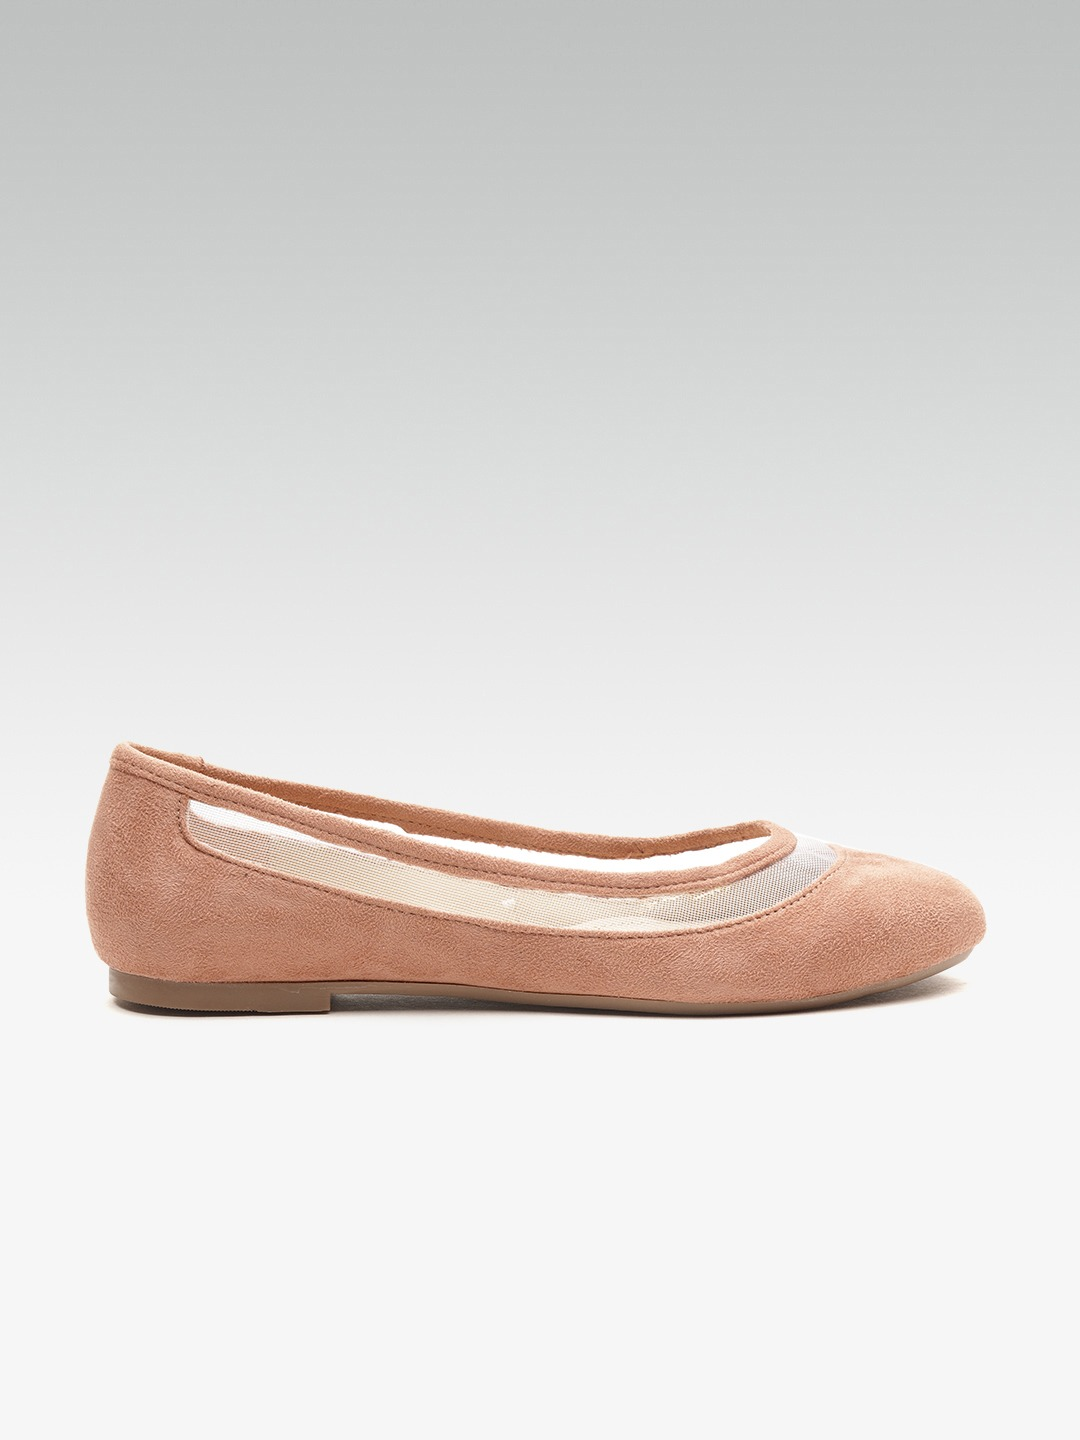 Peach-Coloured Solid Ballerinas